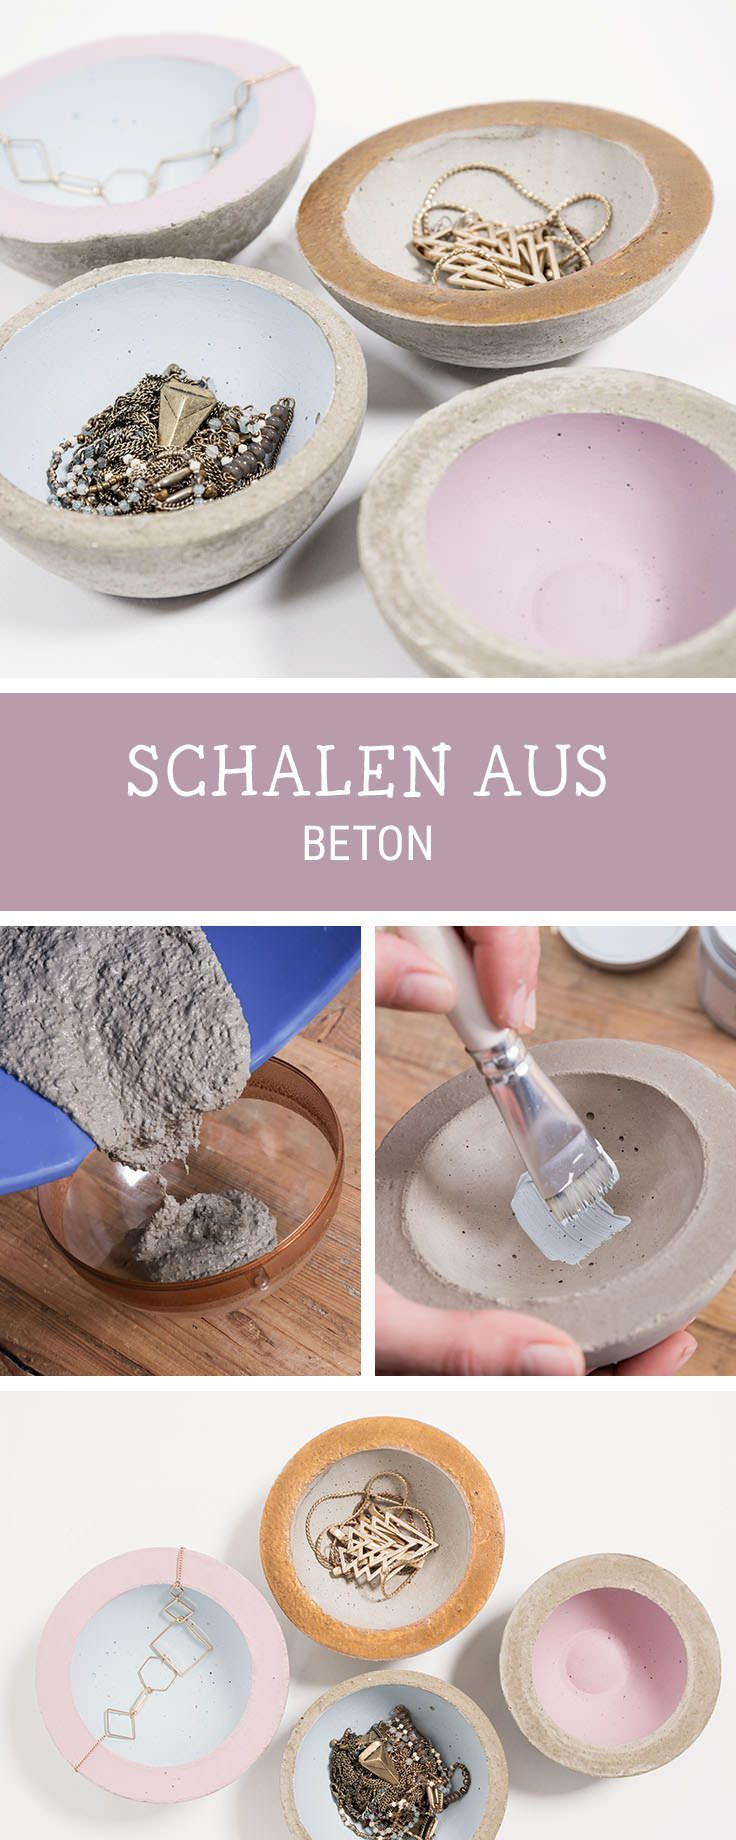 diy anleitung kleine schalen aus beton herstellen via. Black Bedroom Furniture Sets. Home Design Ideas